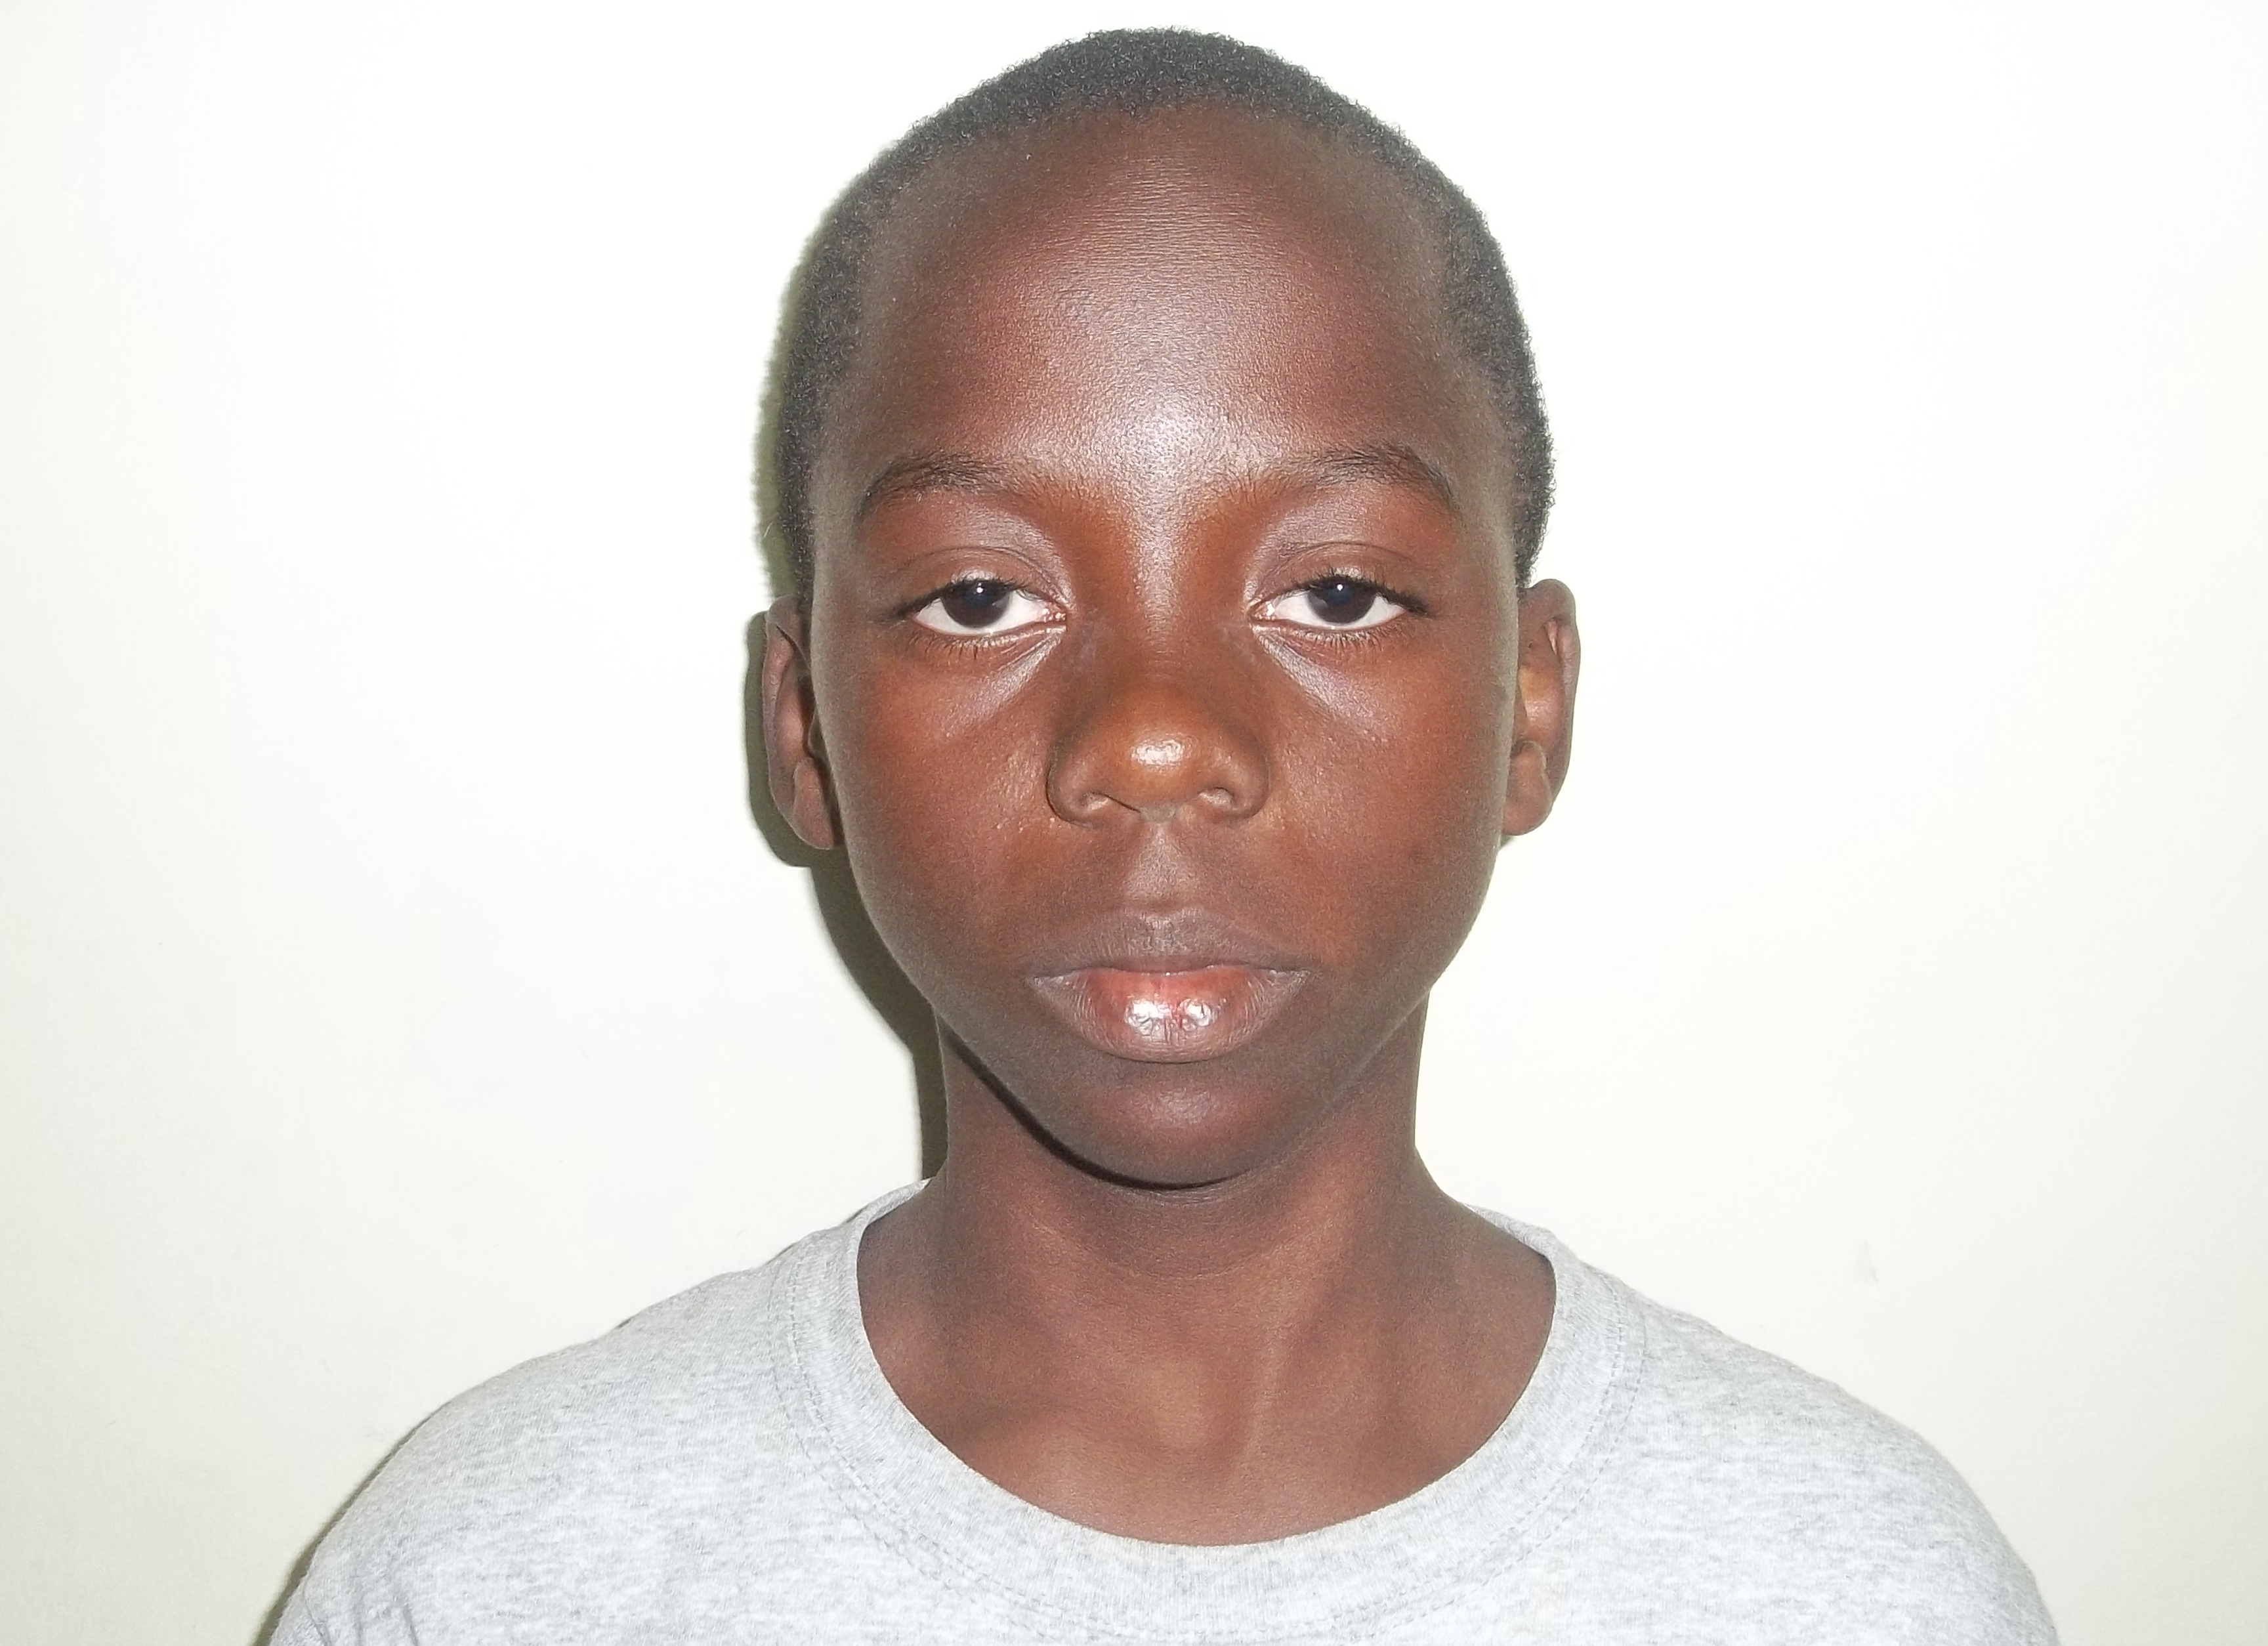 8-year-old American found Wandering at Norman Manley Airport